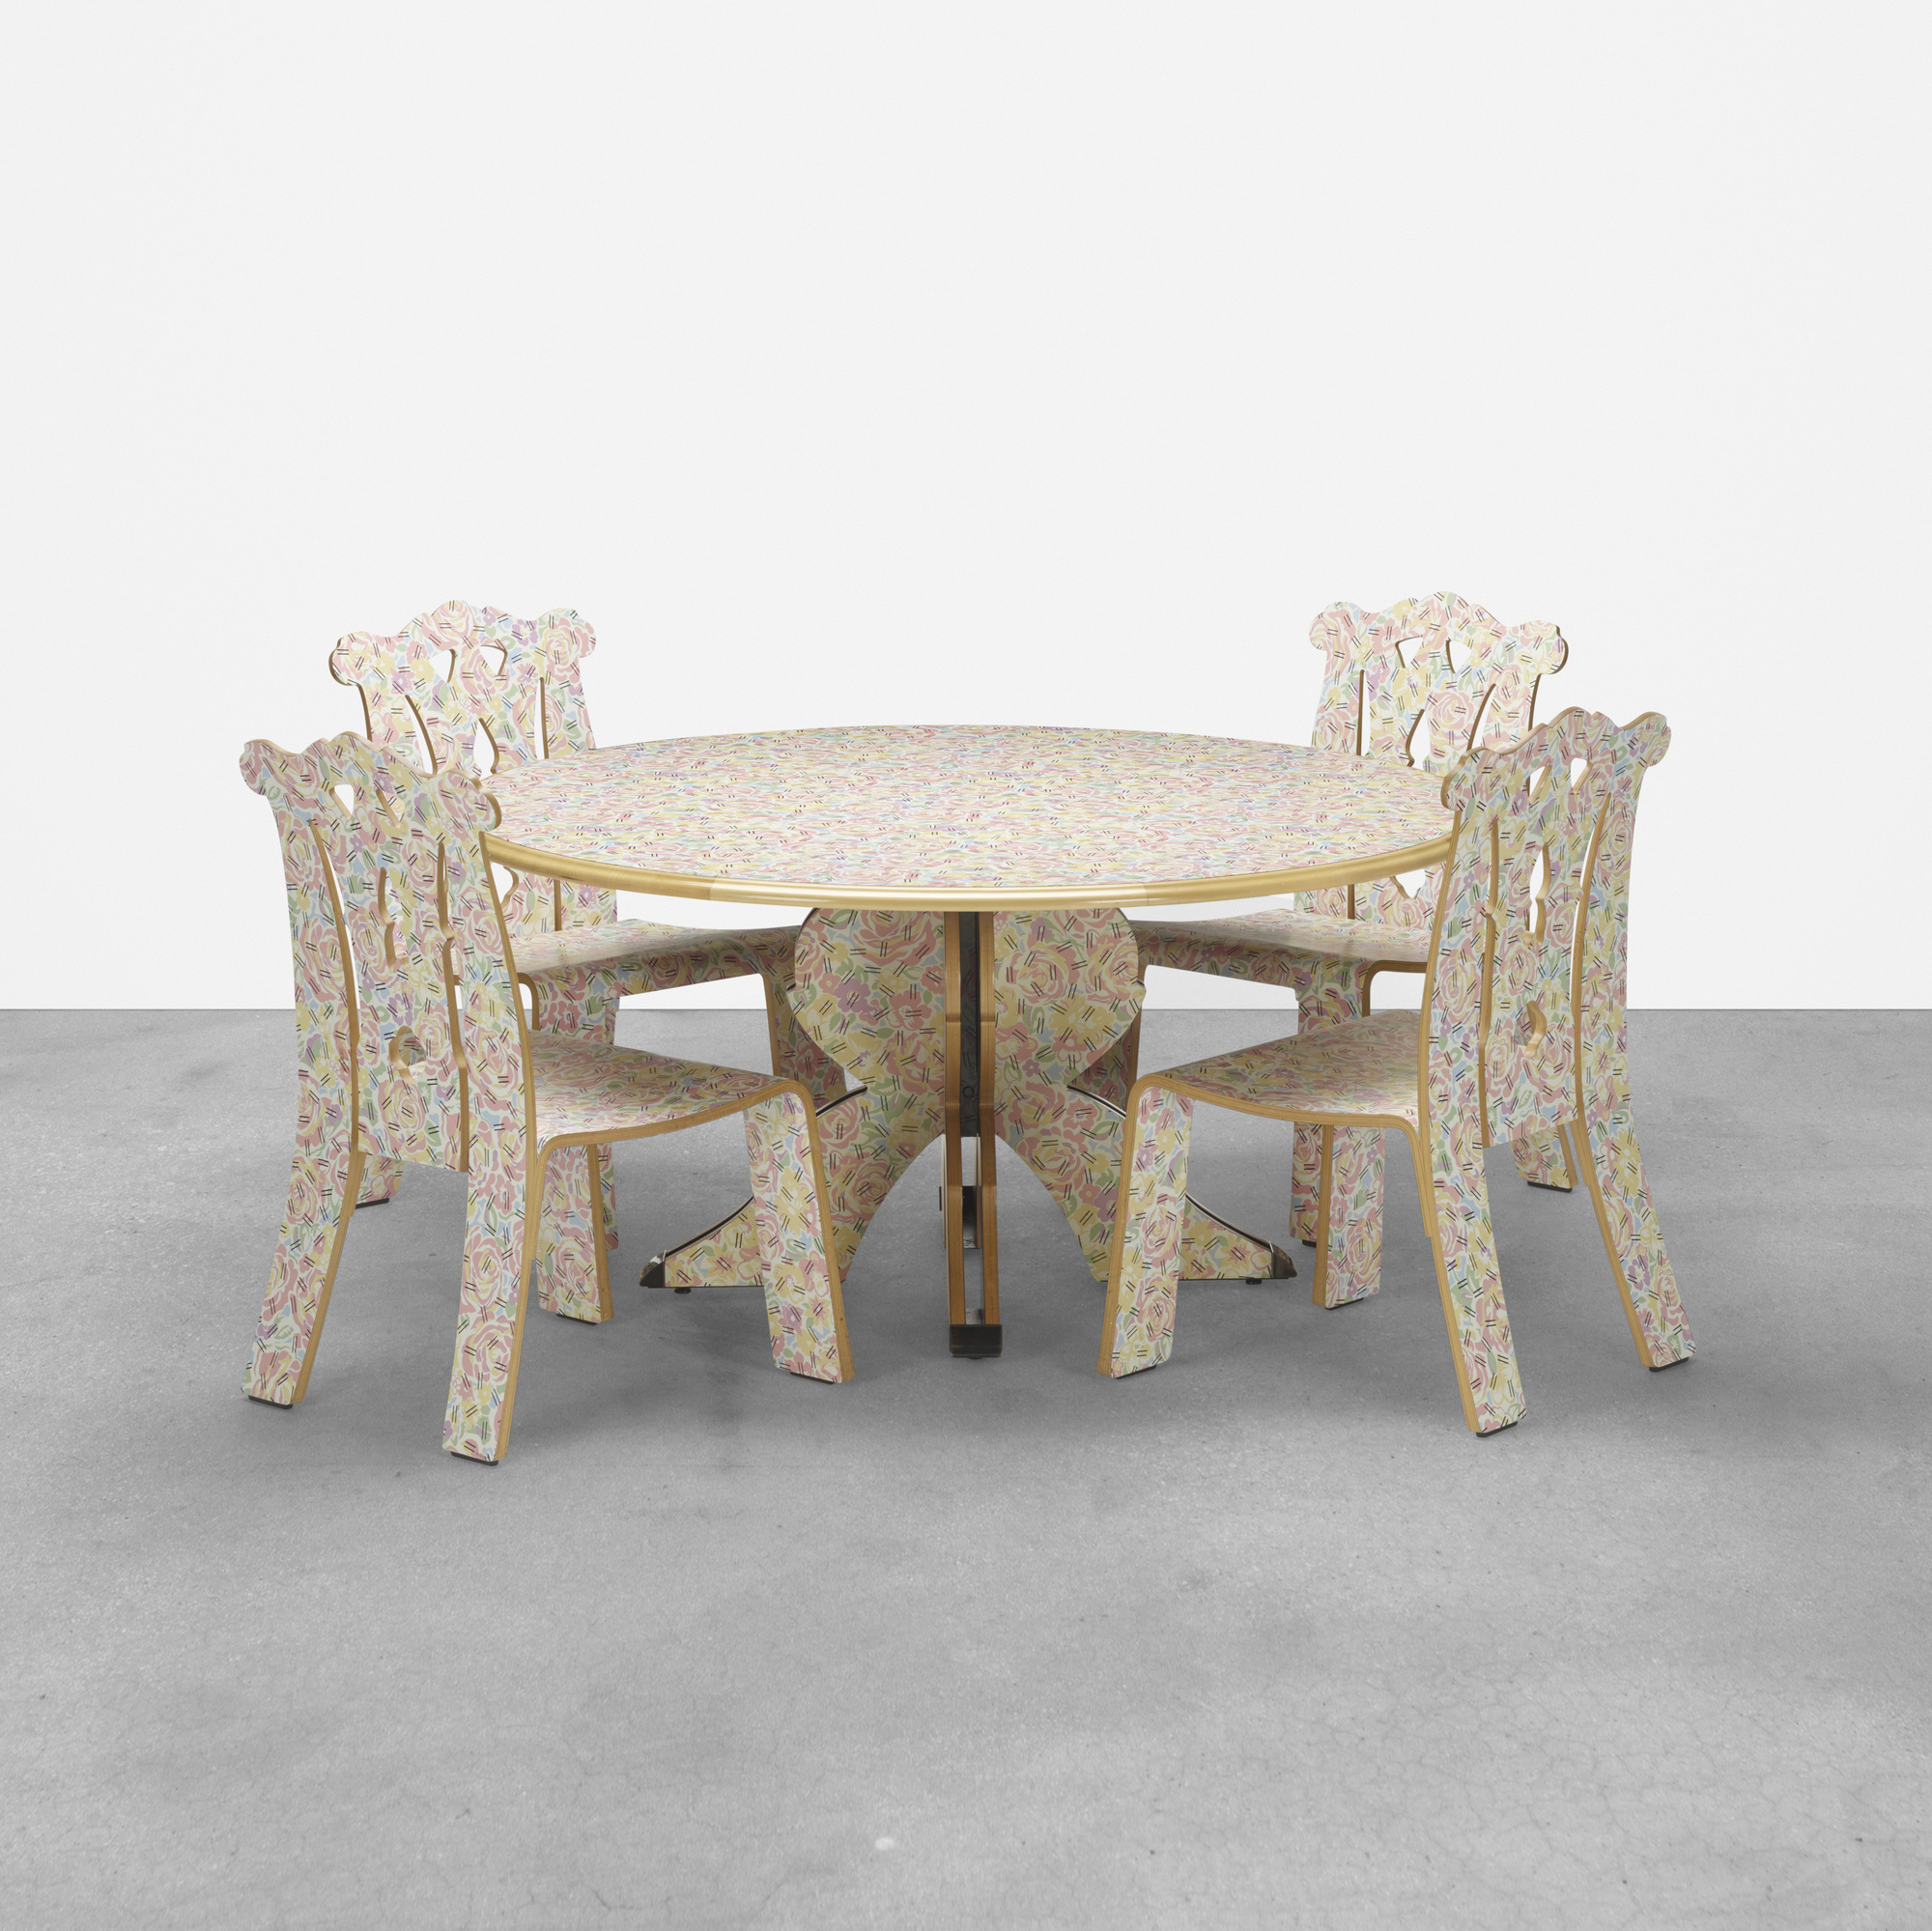 218: Robert Venturi with Denise Scott Brown / dining set (1 of 3)